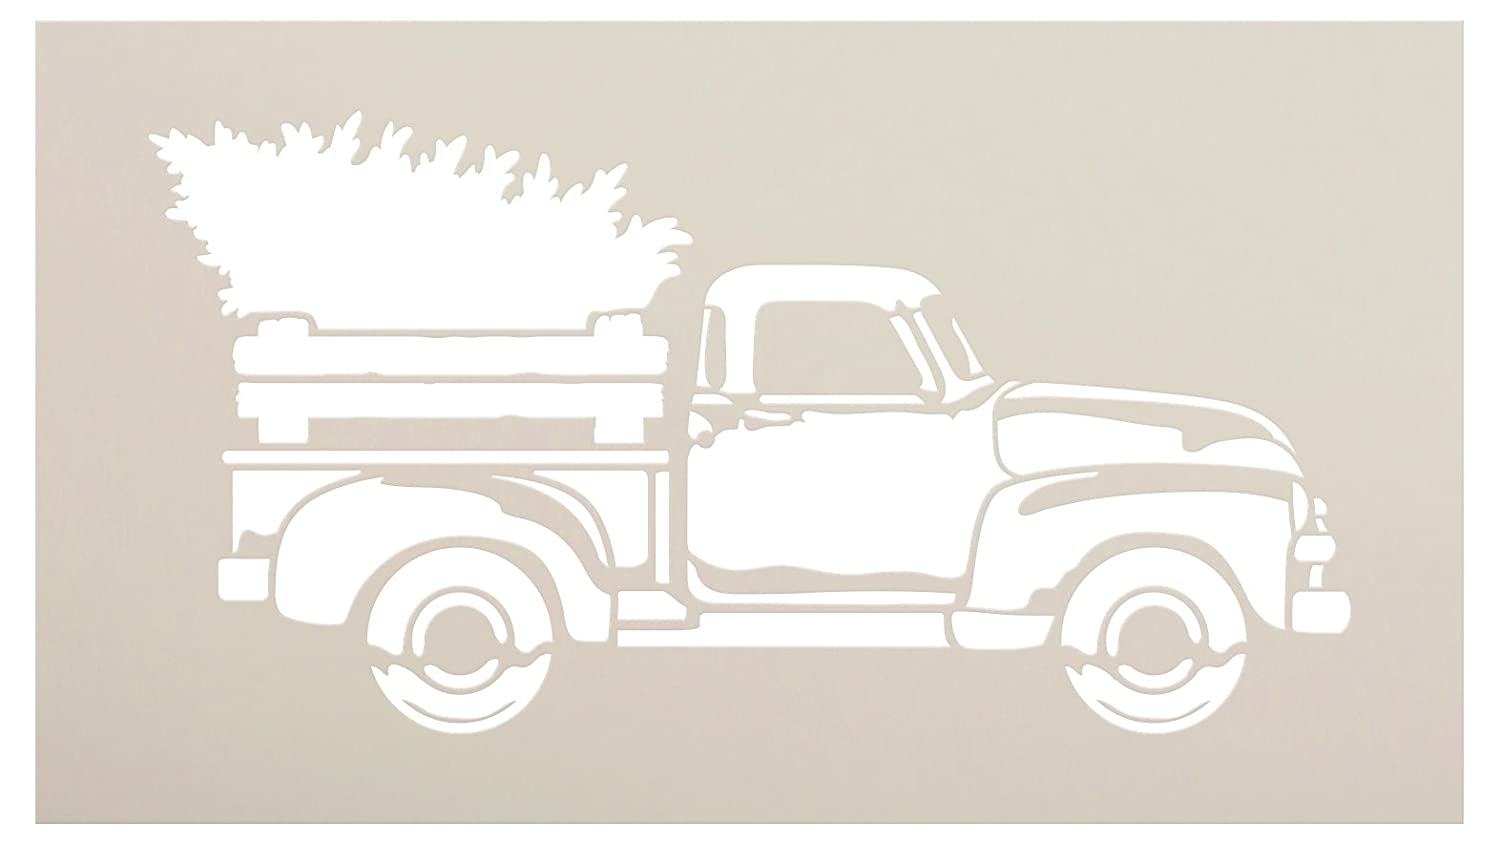 Old Truck With Christmas Tree Painting.Little Red Truck Christmas Holiday Stencil With Tree By Studior12 For Painting Wood Signs Vintage Script Lettering Nostalgic Holiday Home Decor